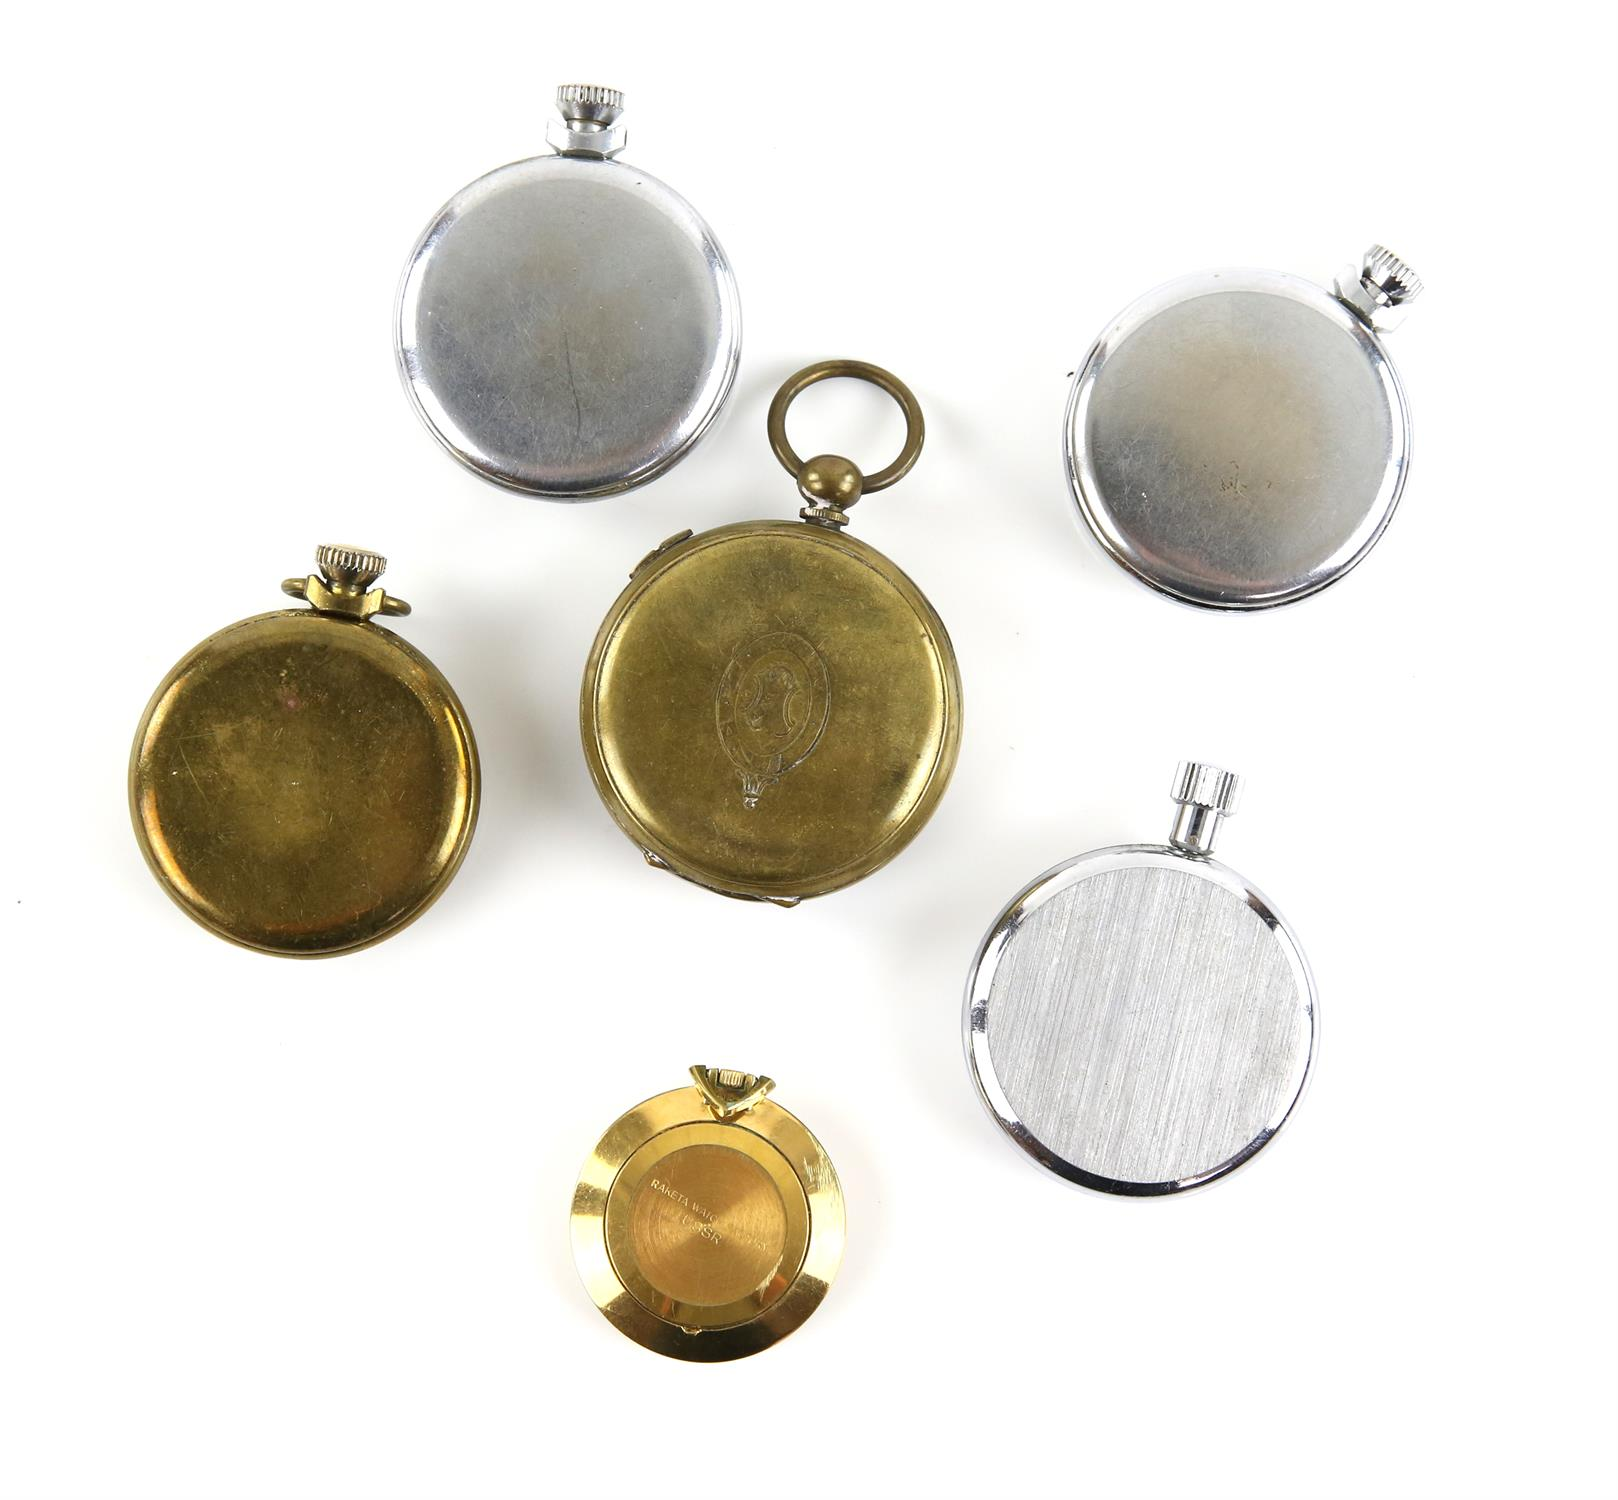 Six pocket watches, including a Heuer, track mate stop pocket watch, with lever wound movement, - Image 2 of 2